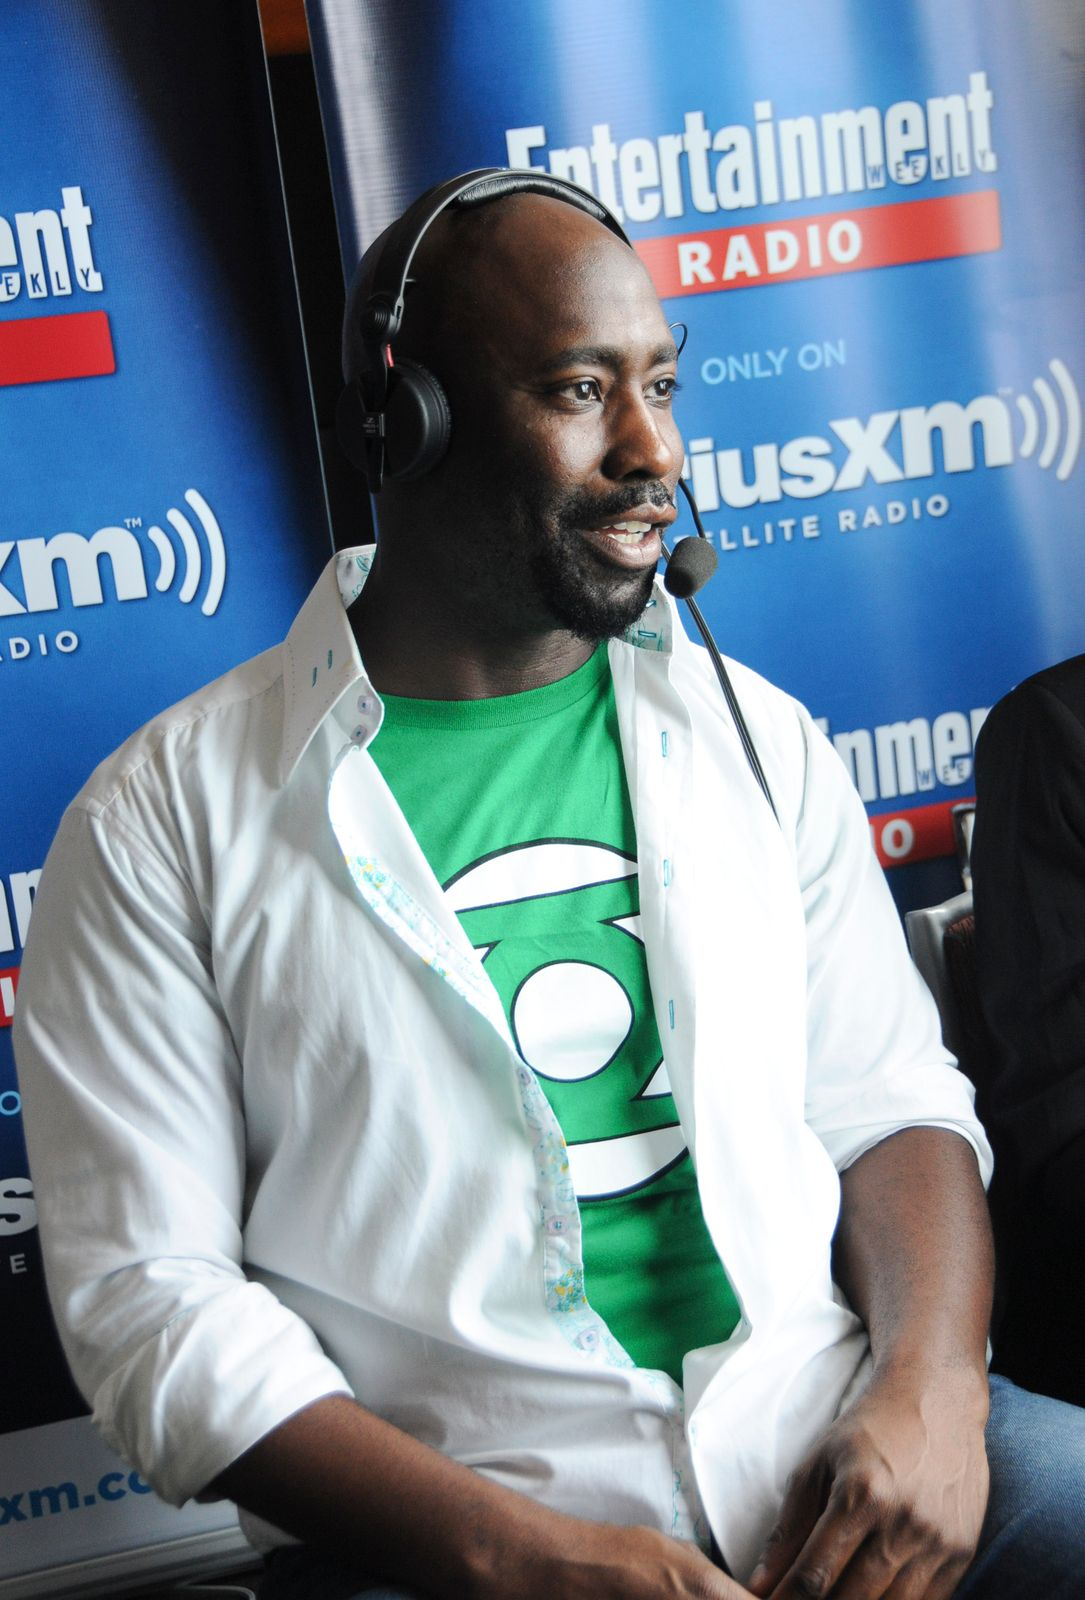 D.B. Woodside at SiriusXM's Entertainment Weekly Radio Channel Broadcasts From Comic-Con 2015 in San Diego on July 10, 2015 | Getty Images